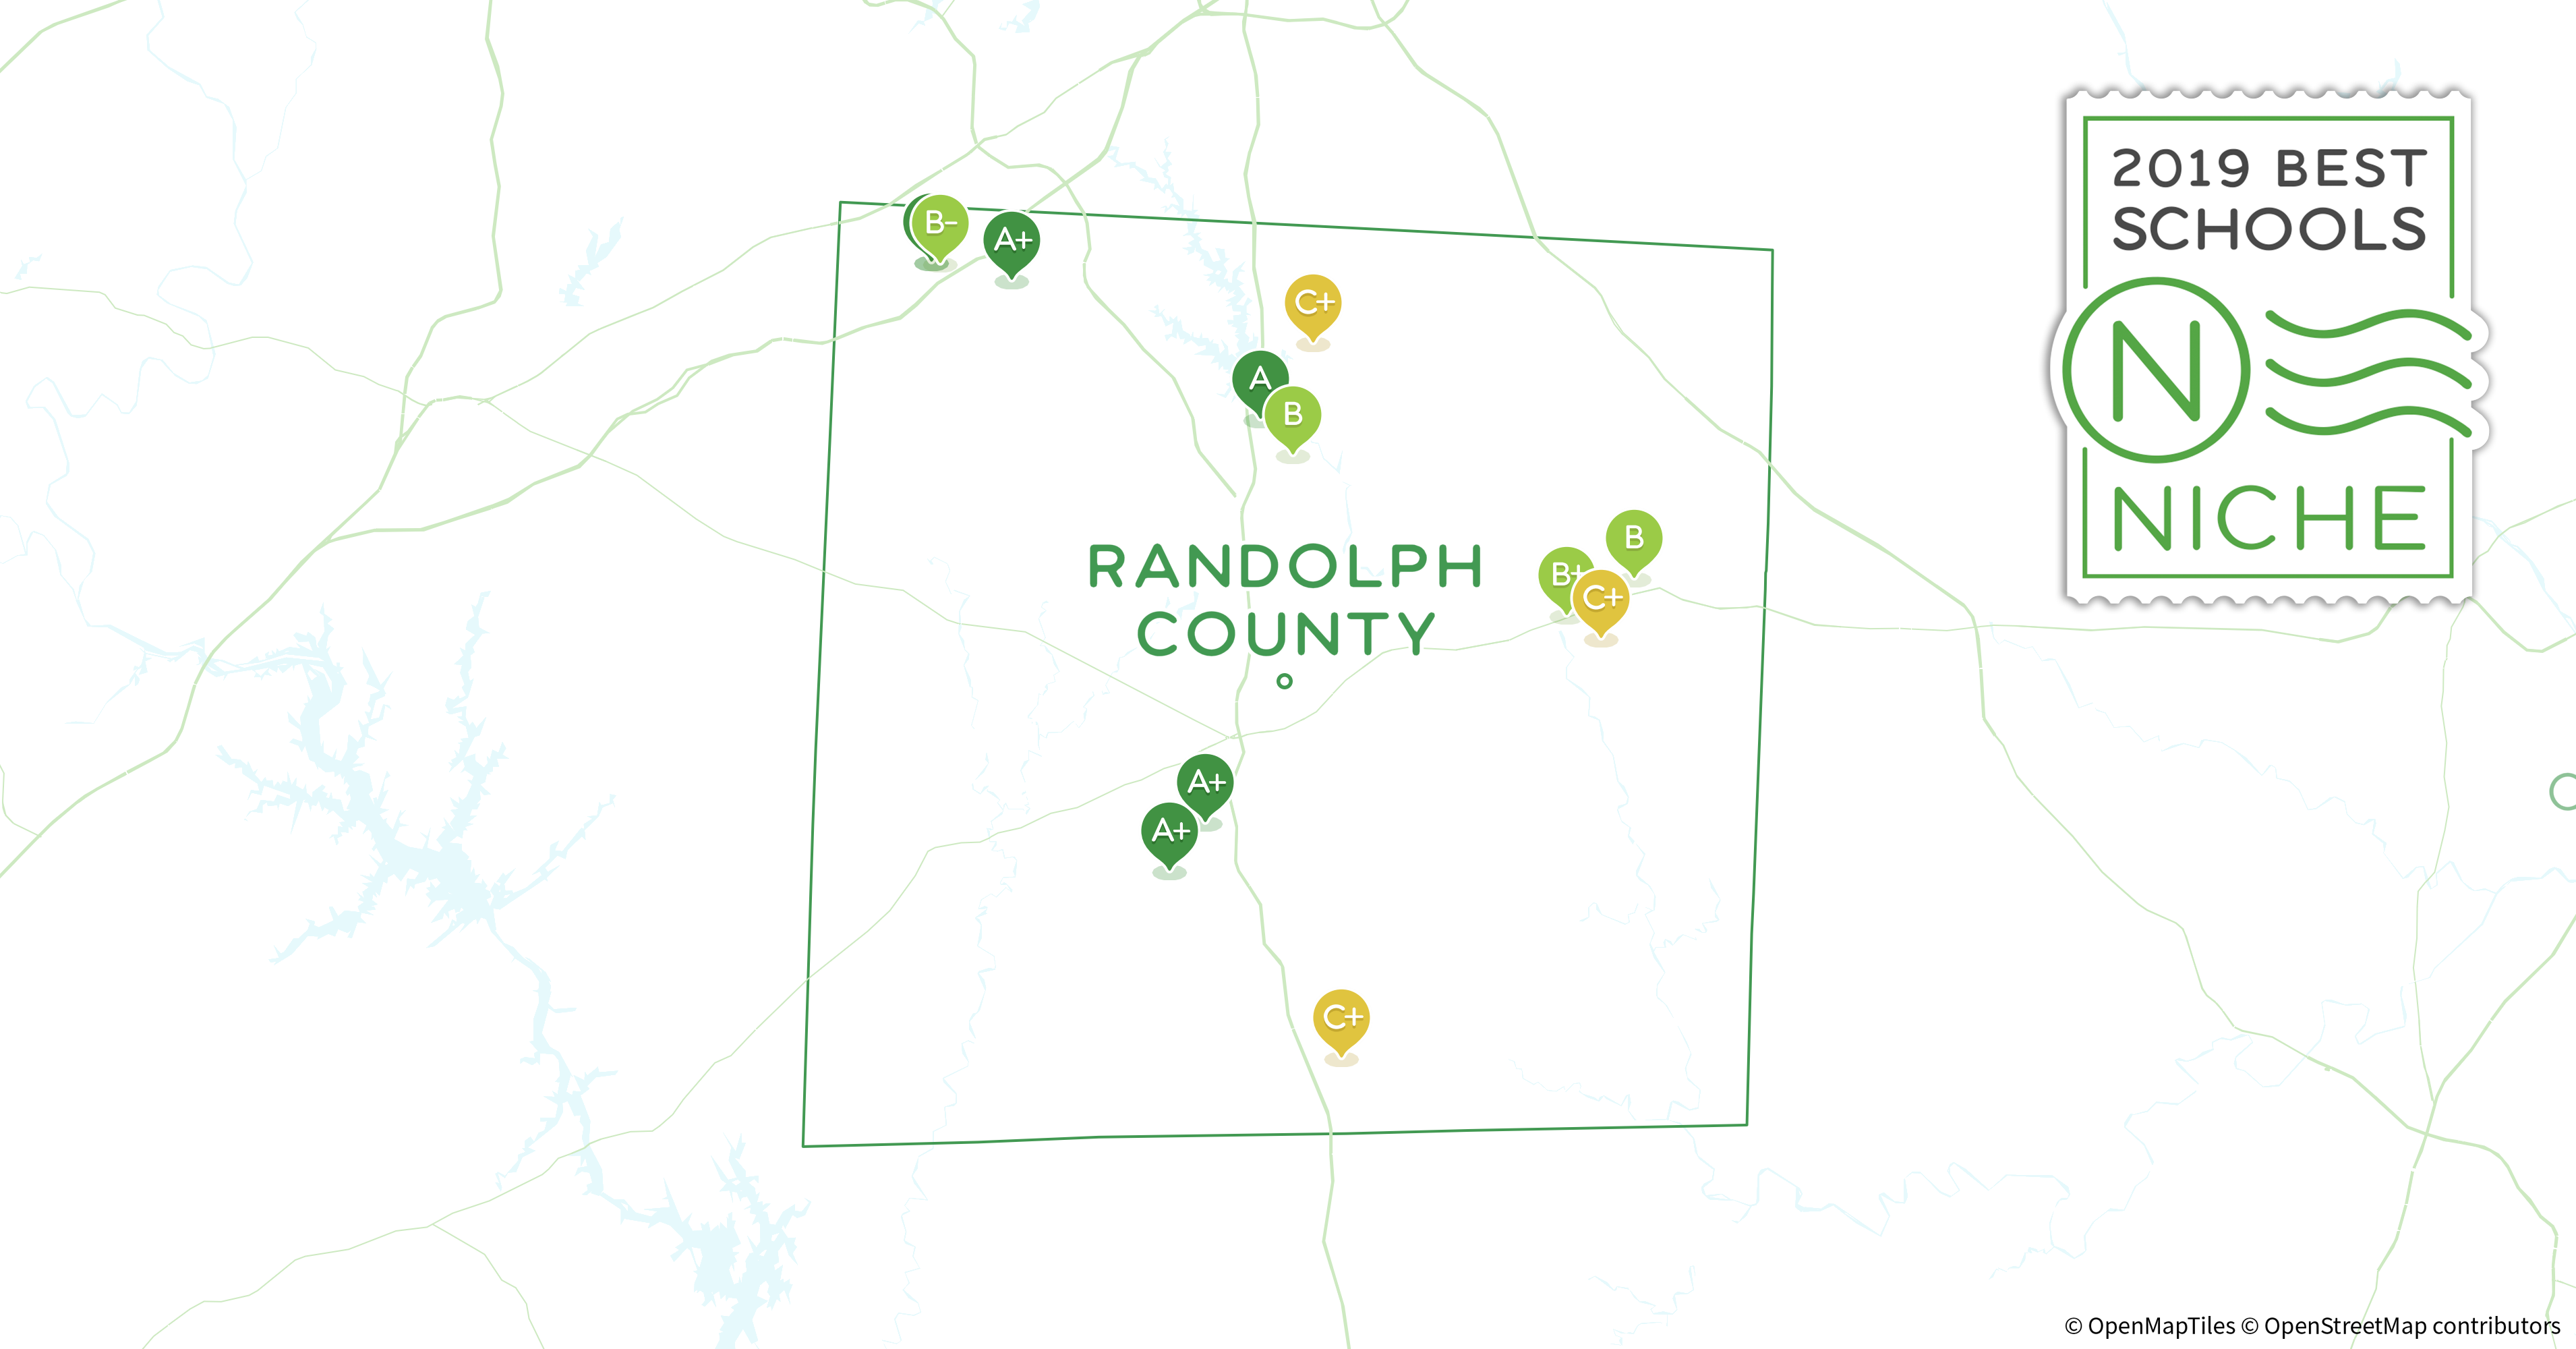 2019 Best Public Middle Schools in Randolph County, NC - Niche